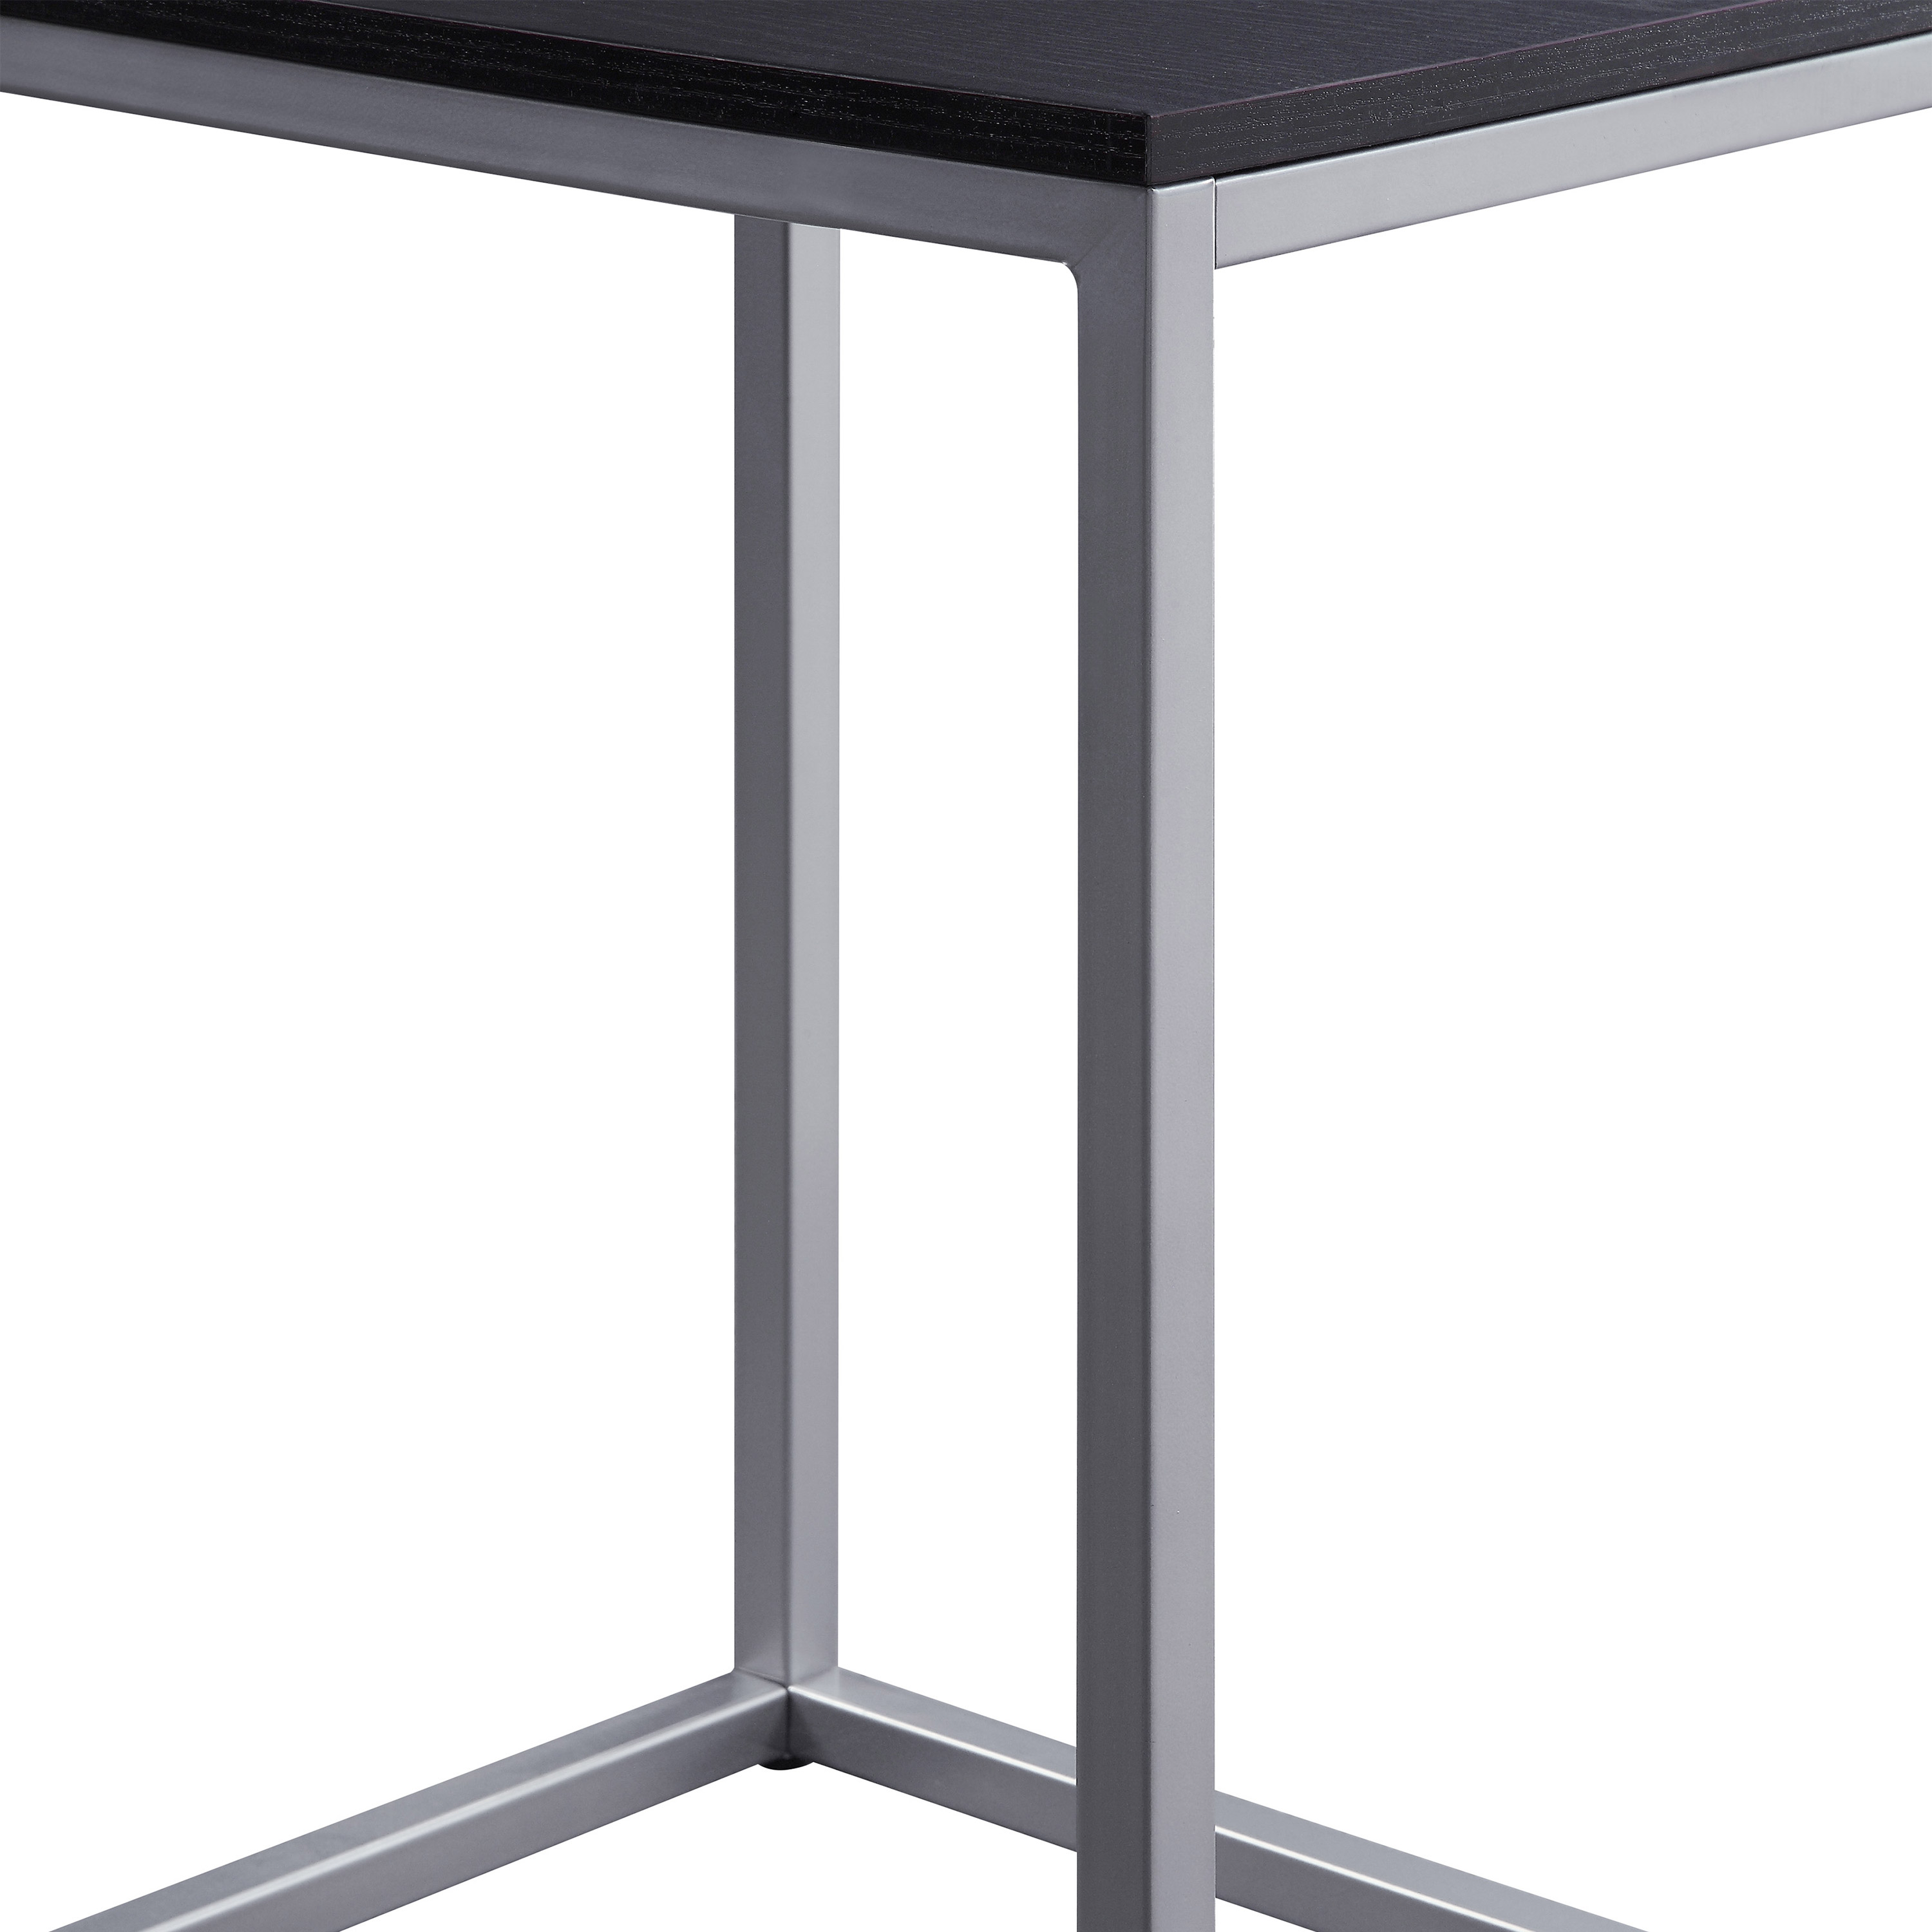 mainstays end table black marble accent solid oak tables grey mirrored bedside west elm parsons coffee target white rugs pouf cool lamps modern dining room accents green paint